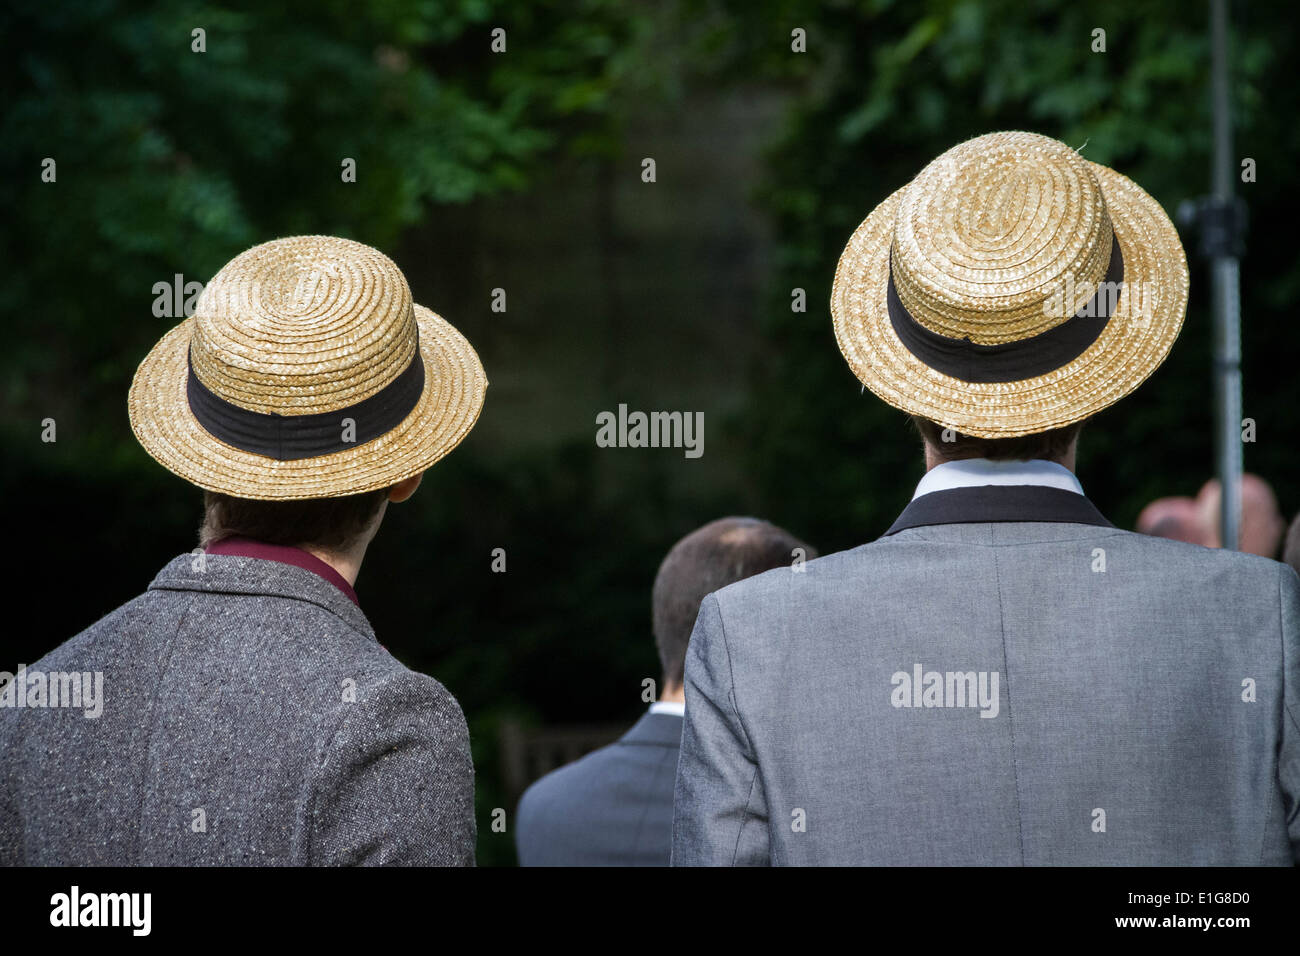 Two Englishman in tweed jackets with straw boater hats. - Stock Image